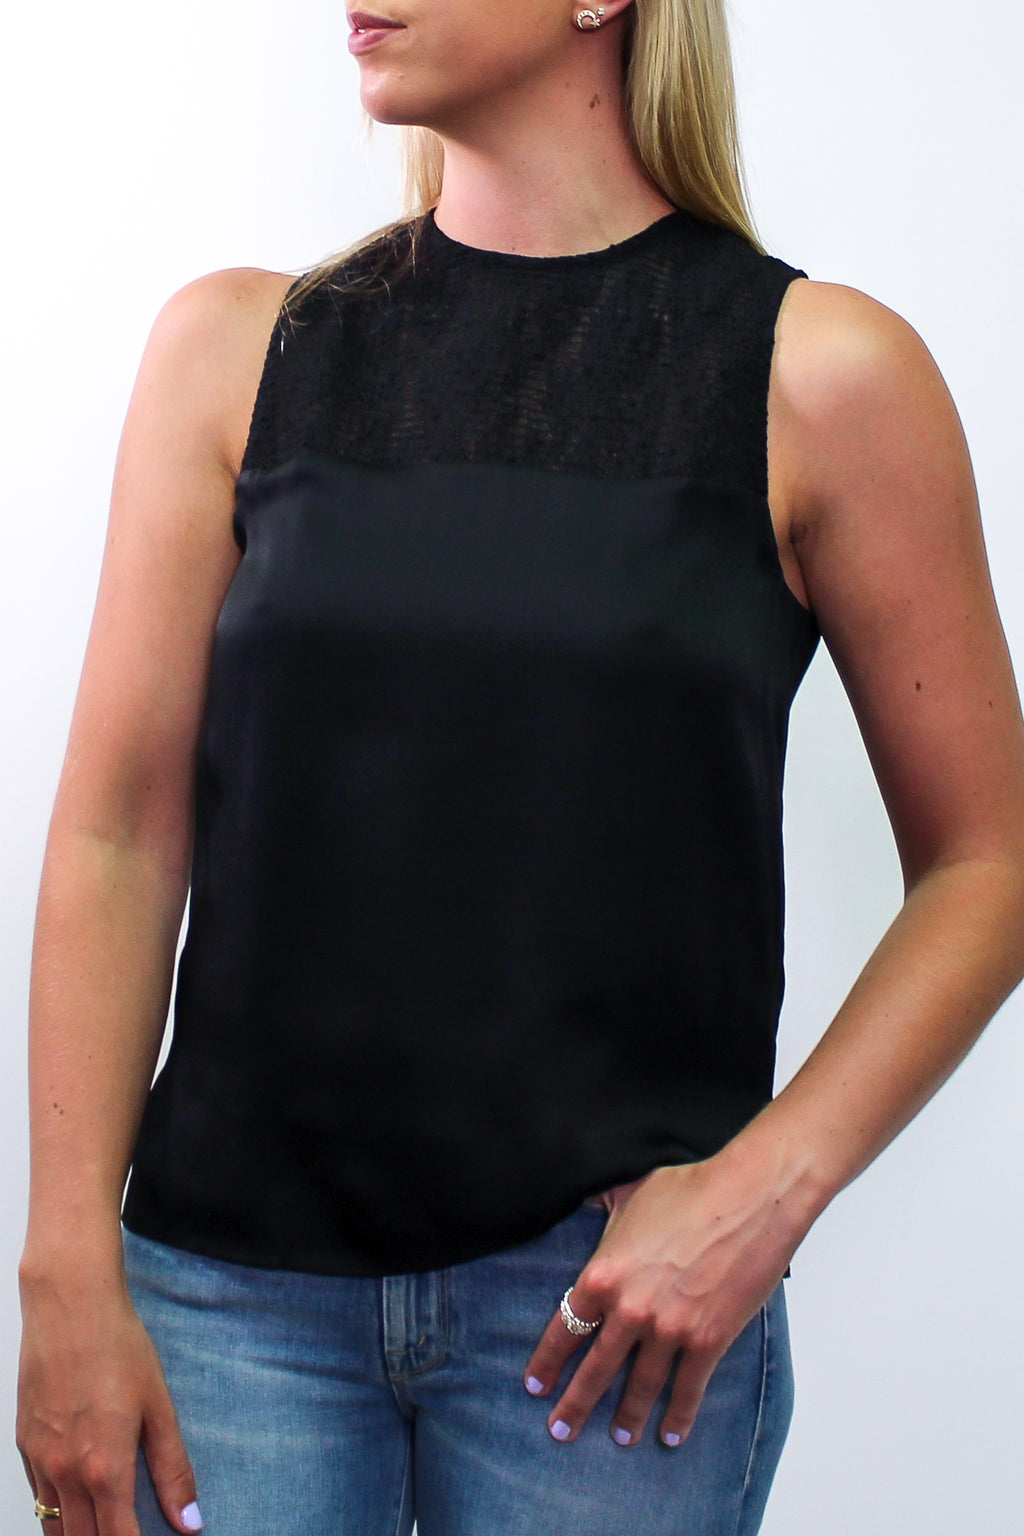 CAMI NYC - THE COLLETTE TOP BLACK WAS $319